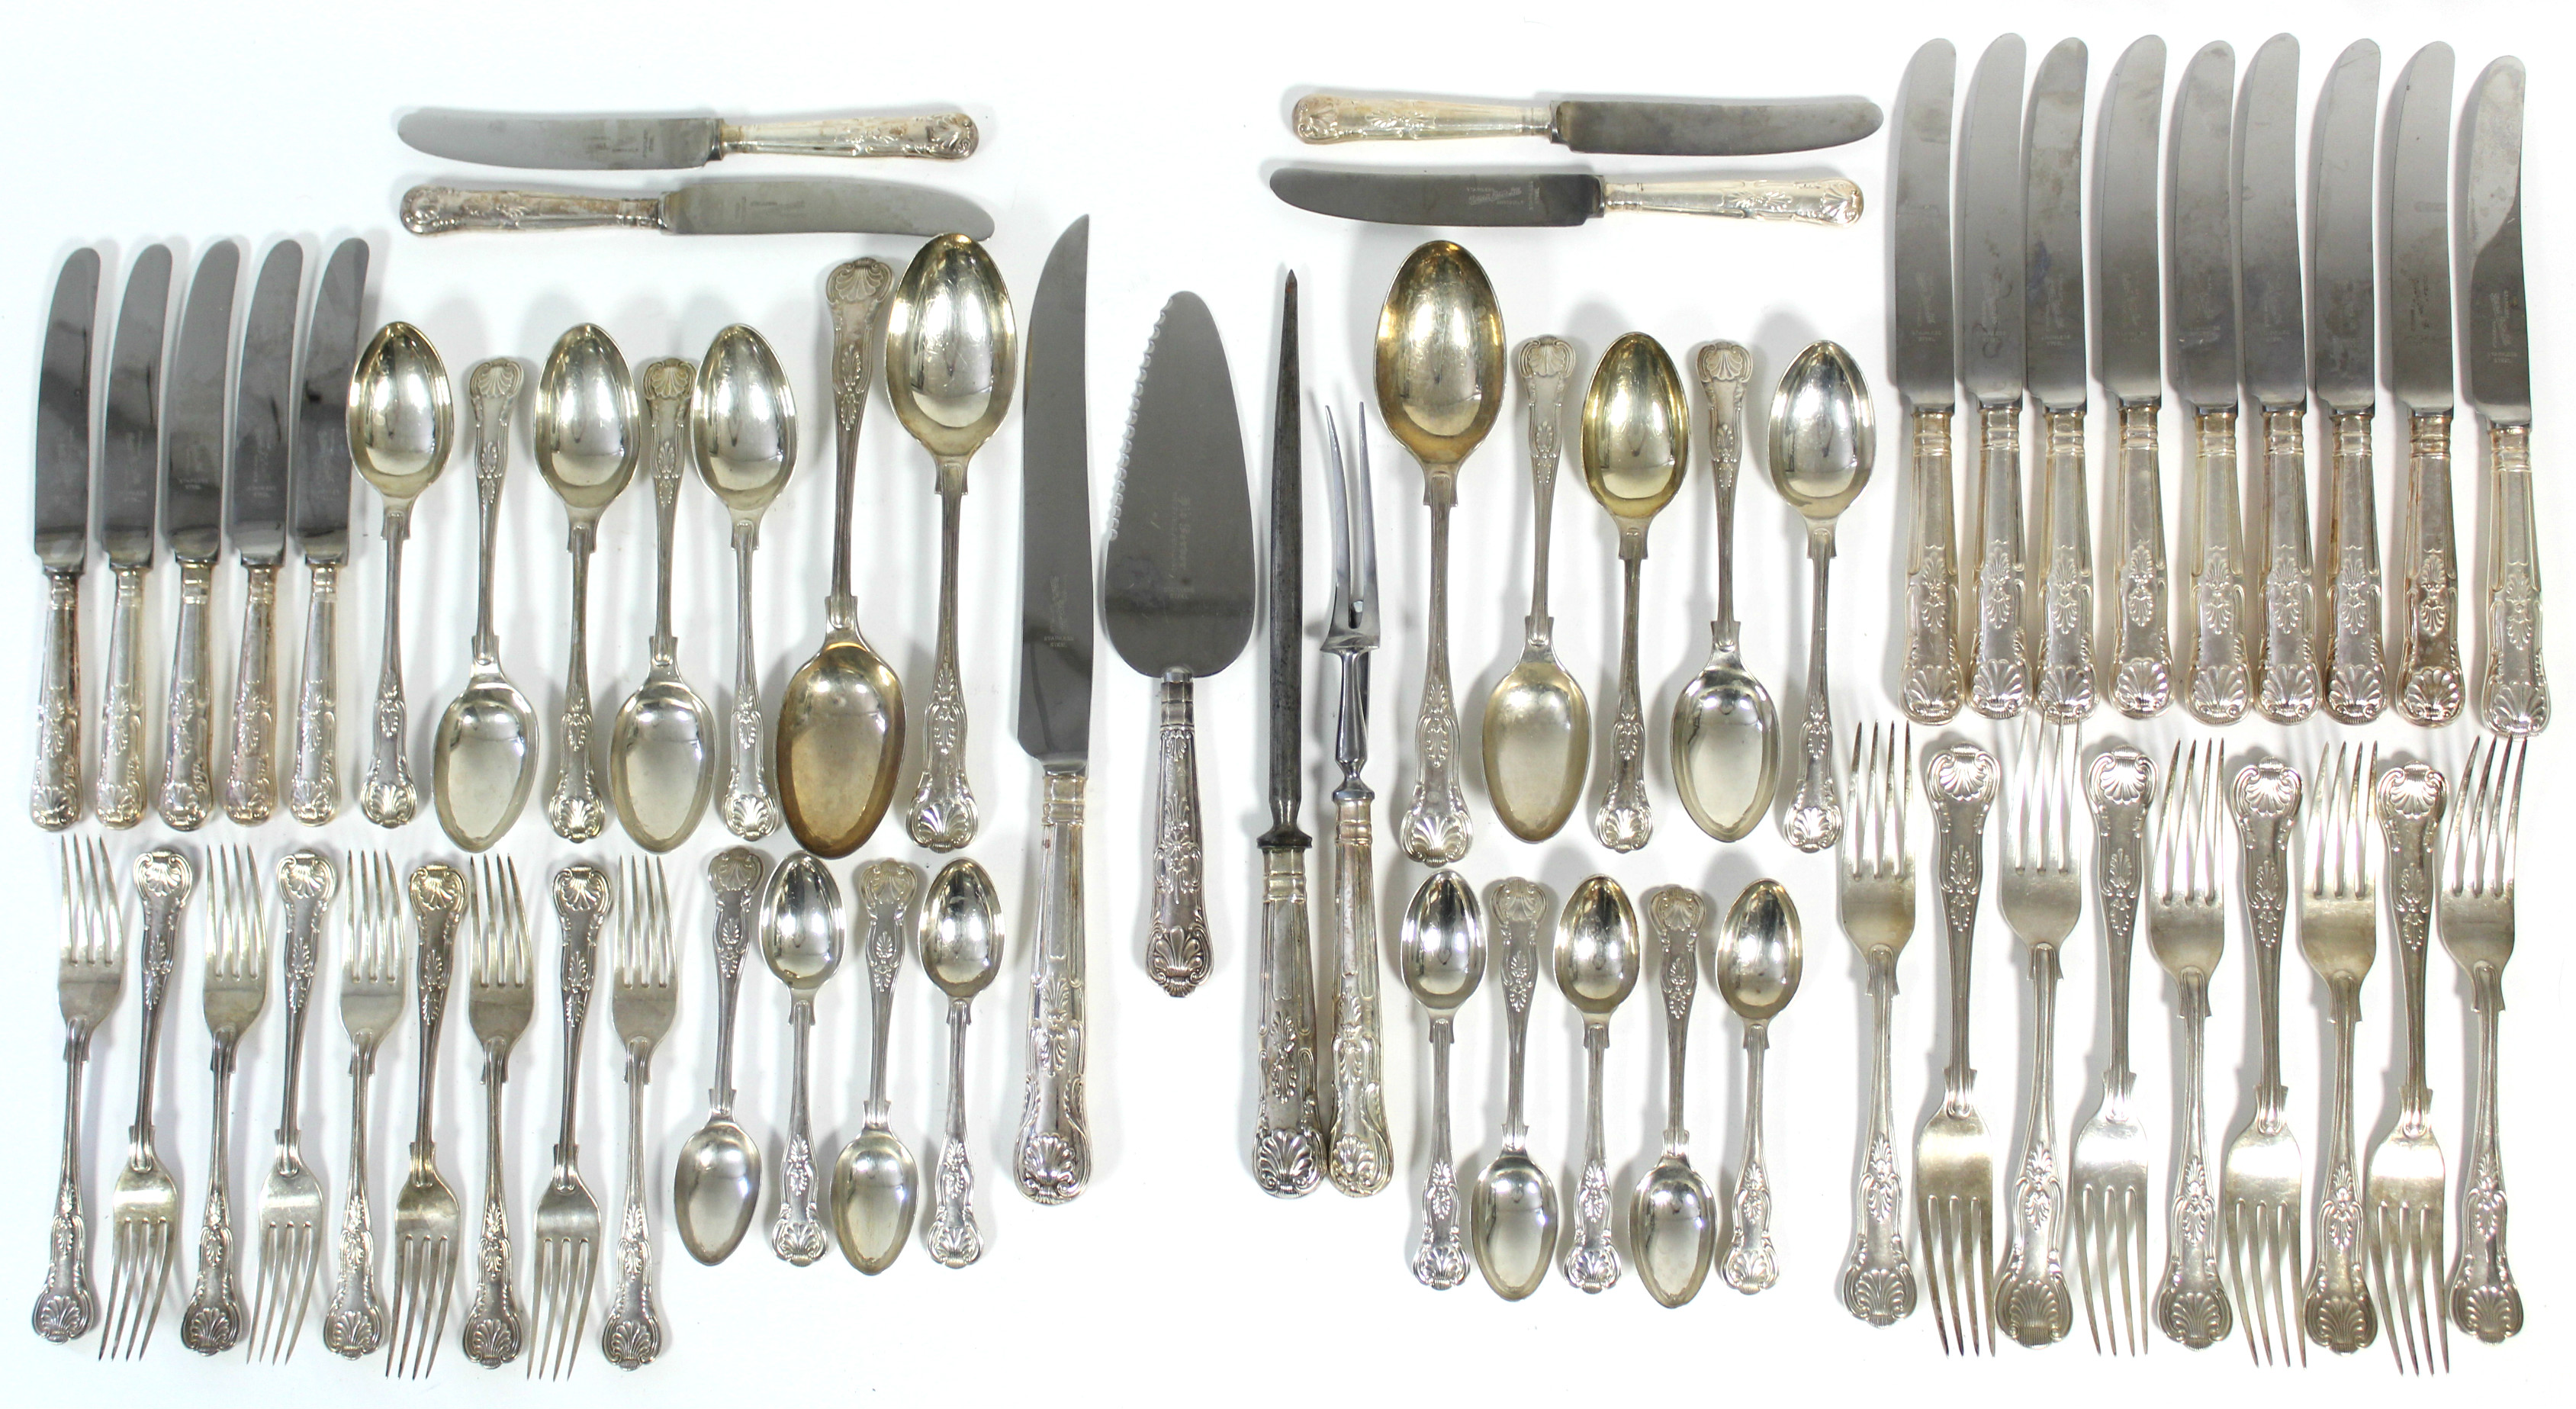 A GEORGE V SILVER PART SERVICE OF KING'S PATTERN FLATWARE, comprising: three table spoons, nine